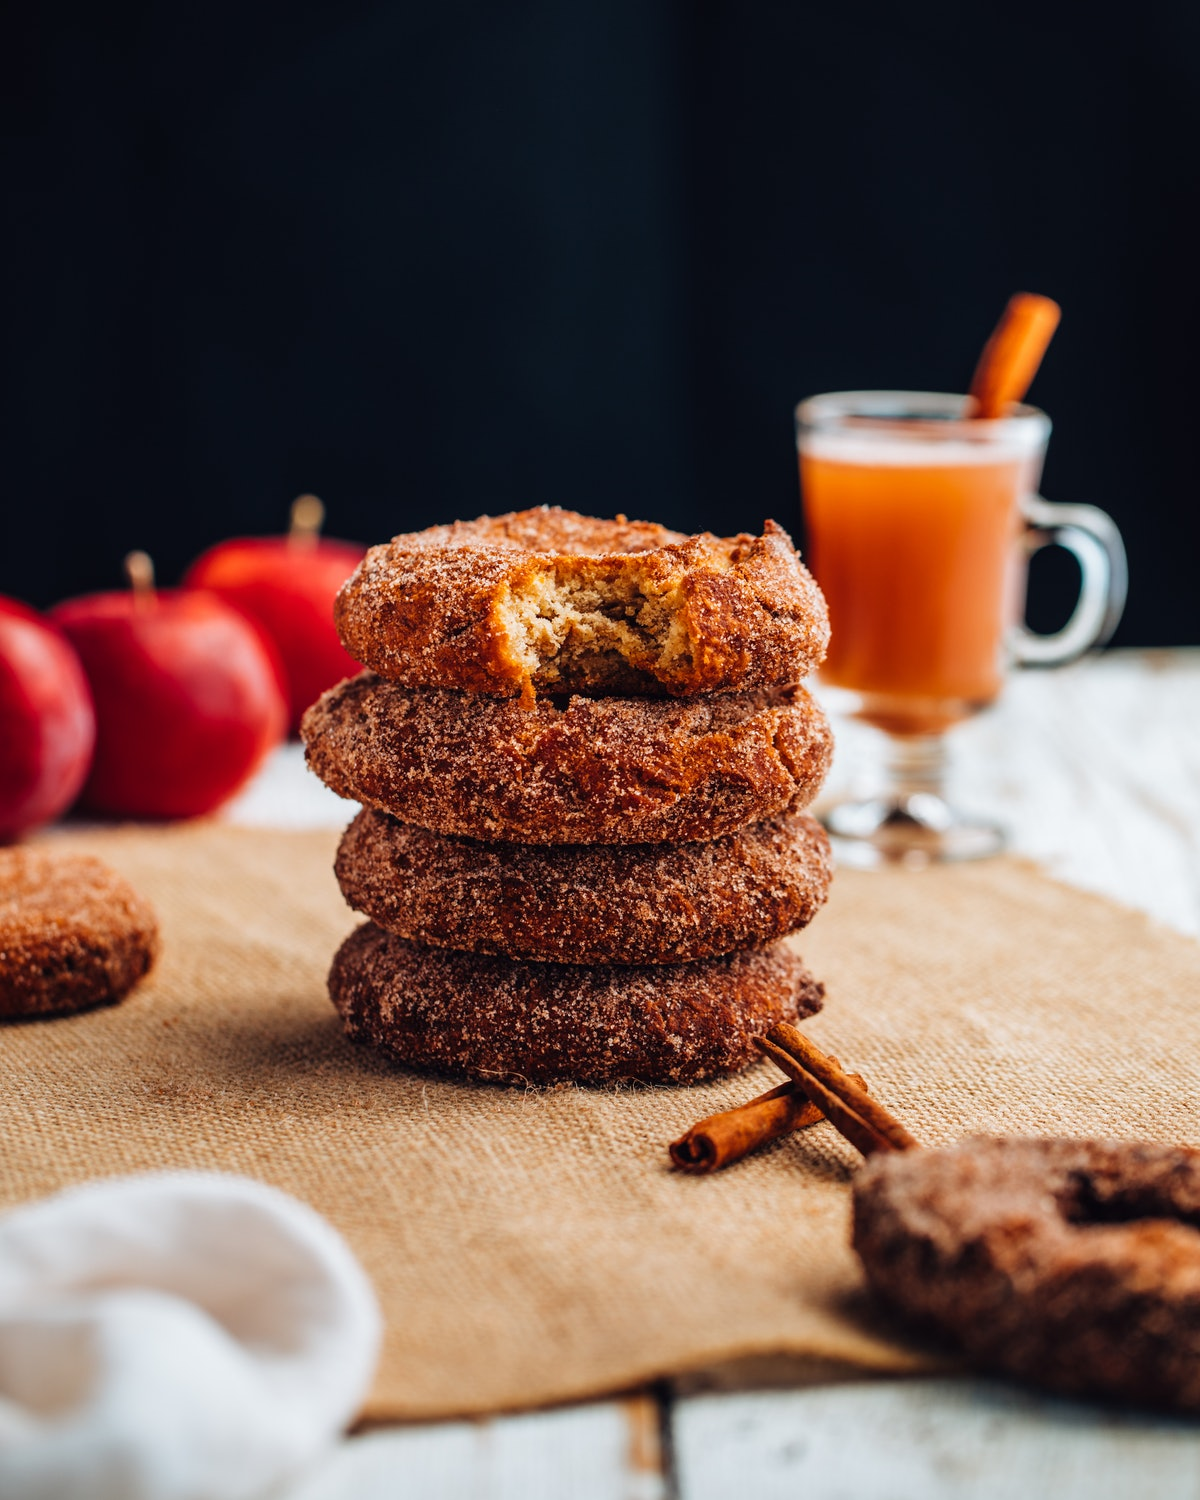 Julianna Vezza's apple cider donuts sit next to a glass of apple cider and fresh apples on a cloth.